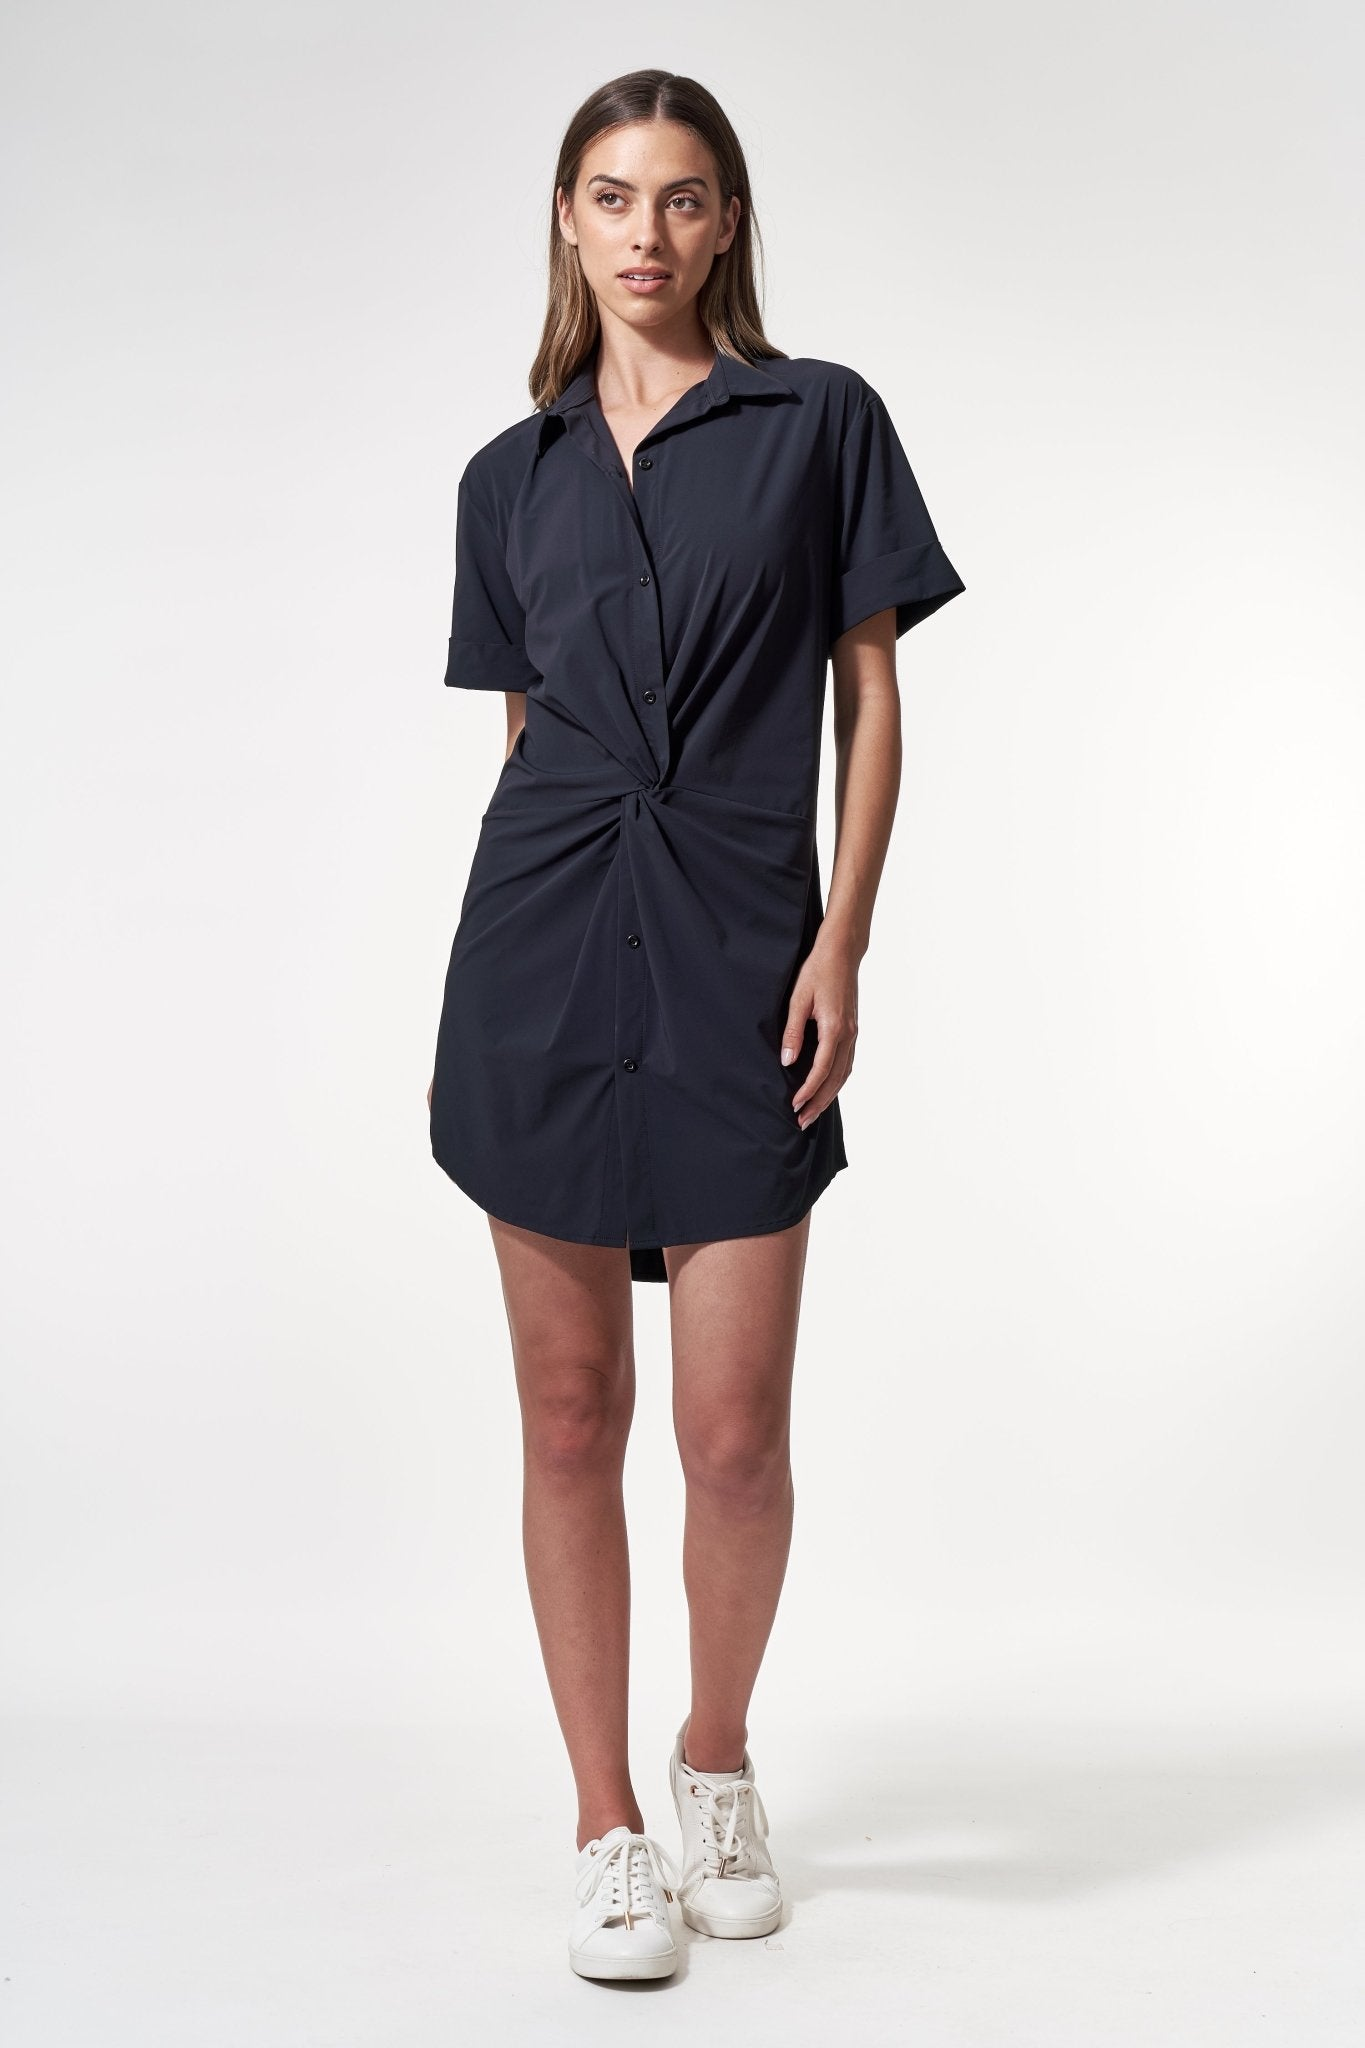 Twist Dress Black, dresses/jumpsuit/skirt - shopdyi.com